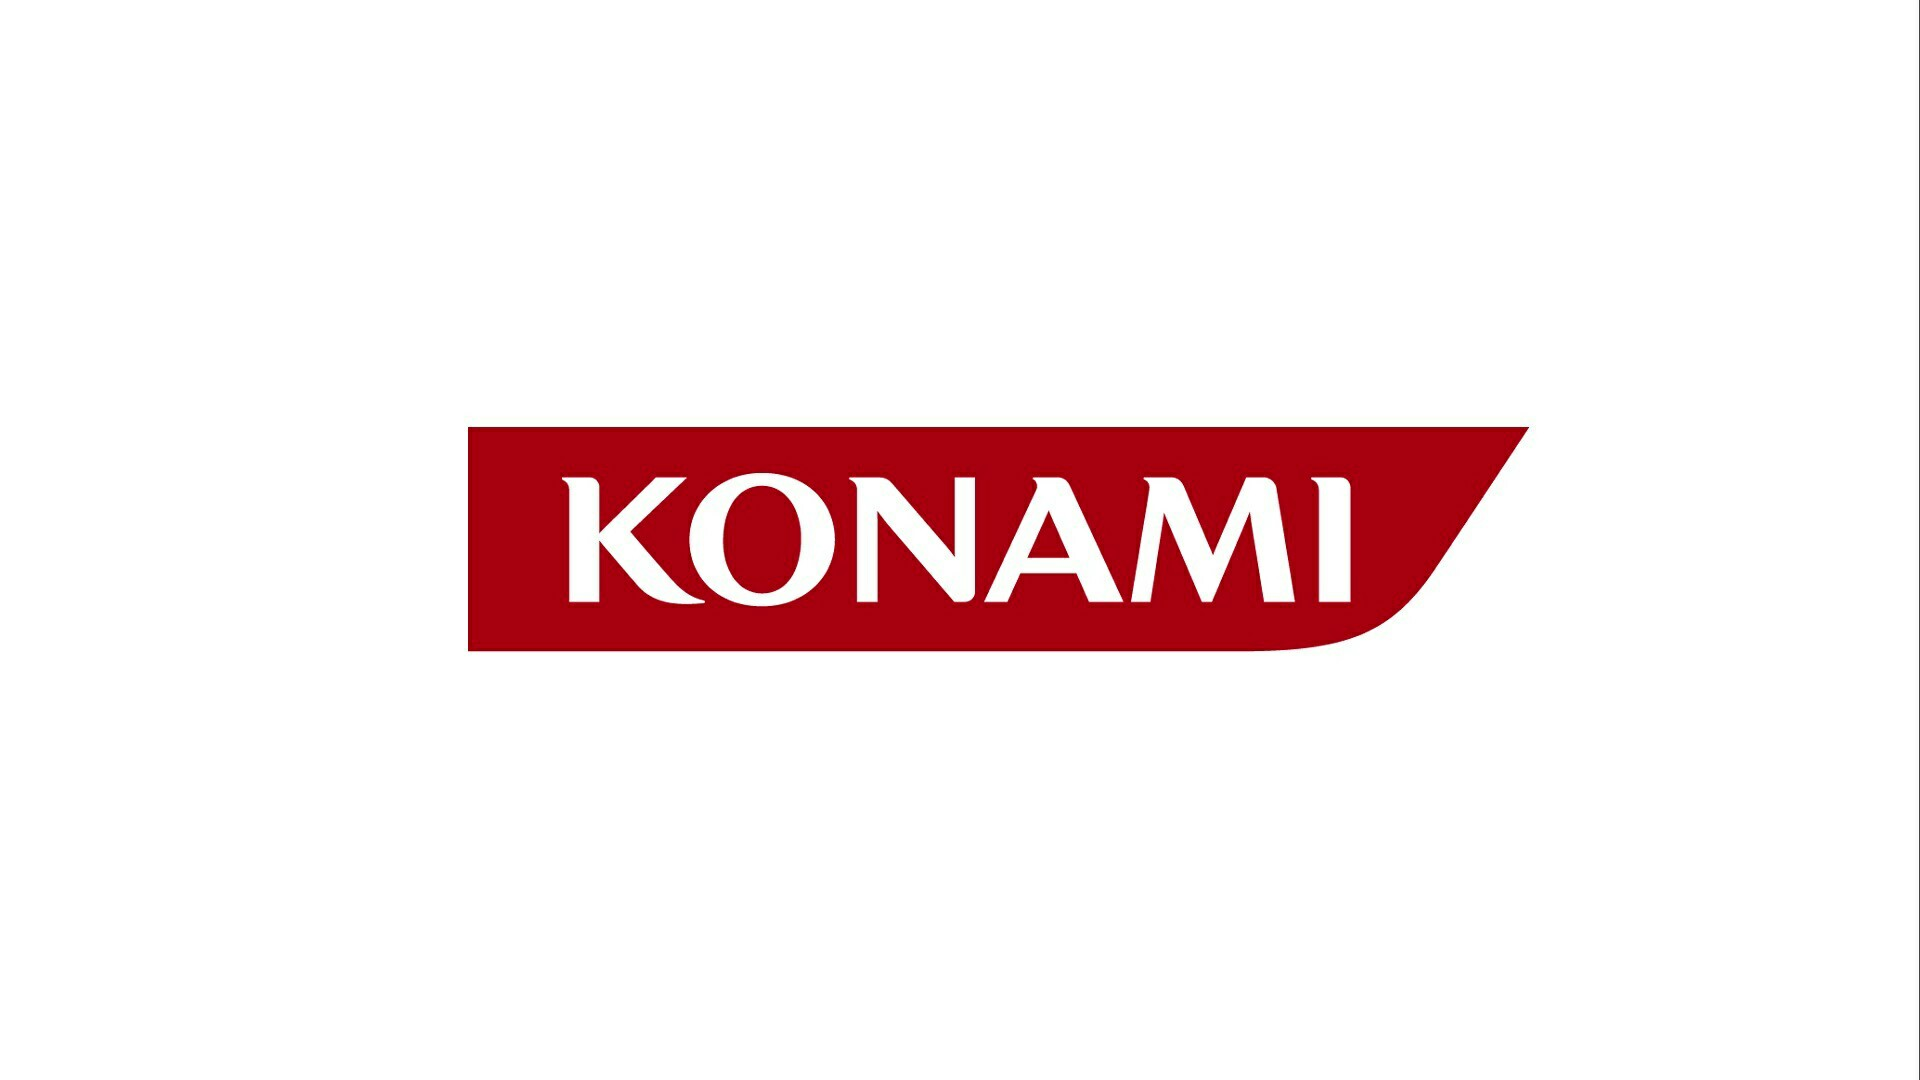 Konami Insists They're Not Abandoning Gaming Despite Obstacles The Team Faces